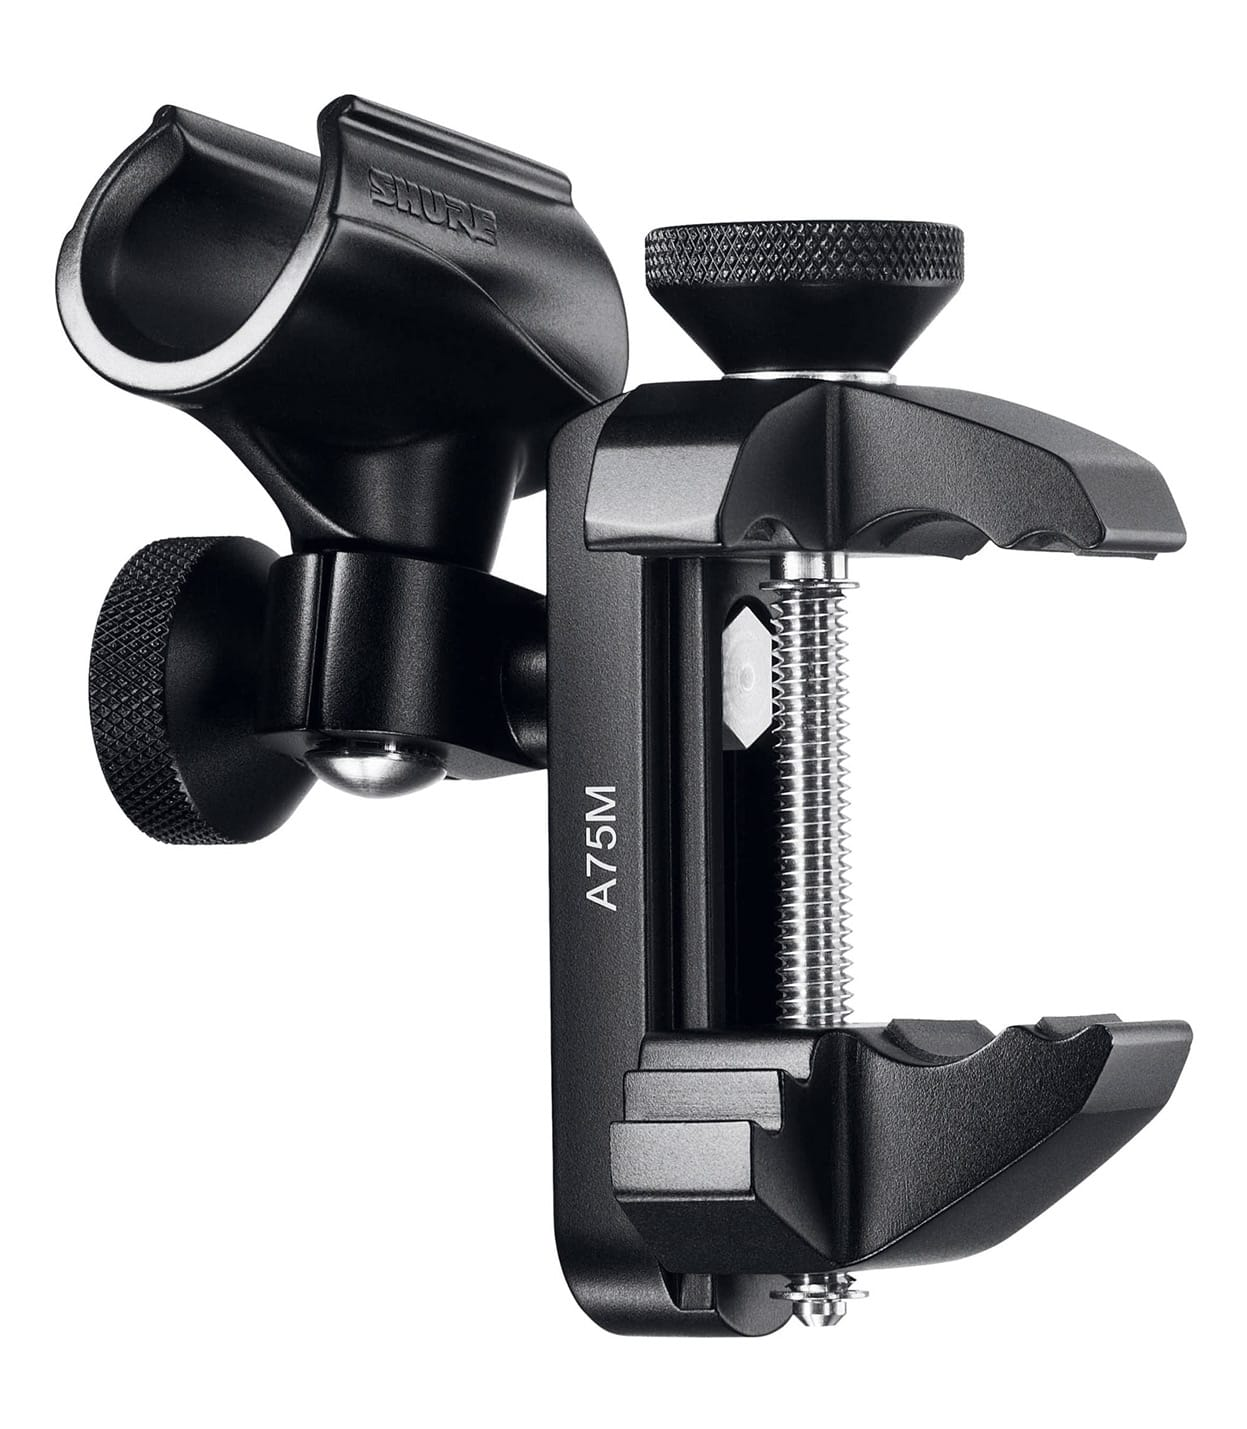 Buy shure - A75M Universal Microphone Mount